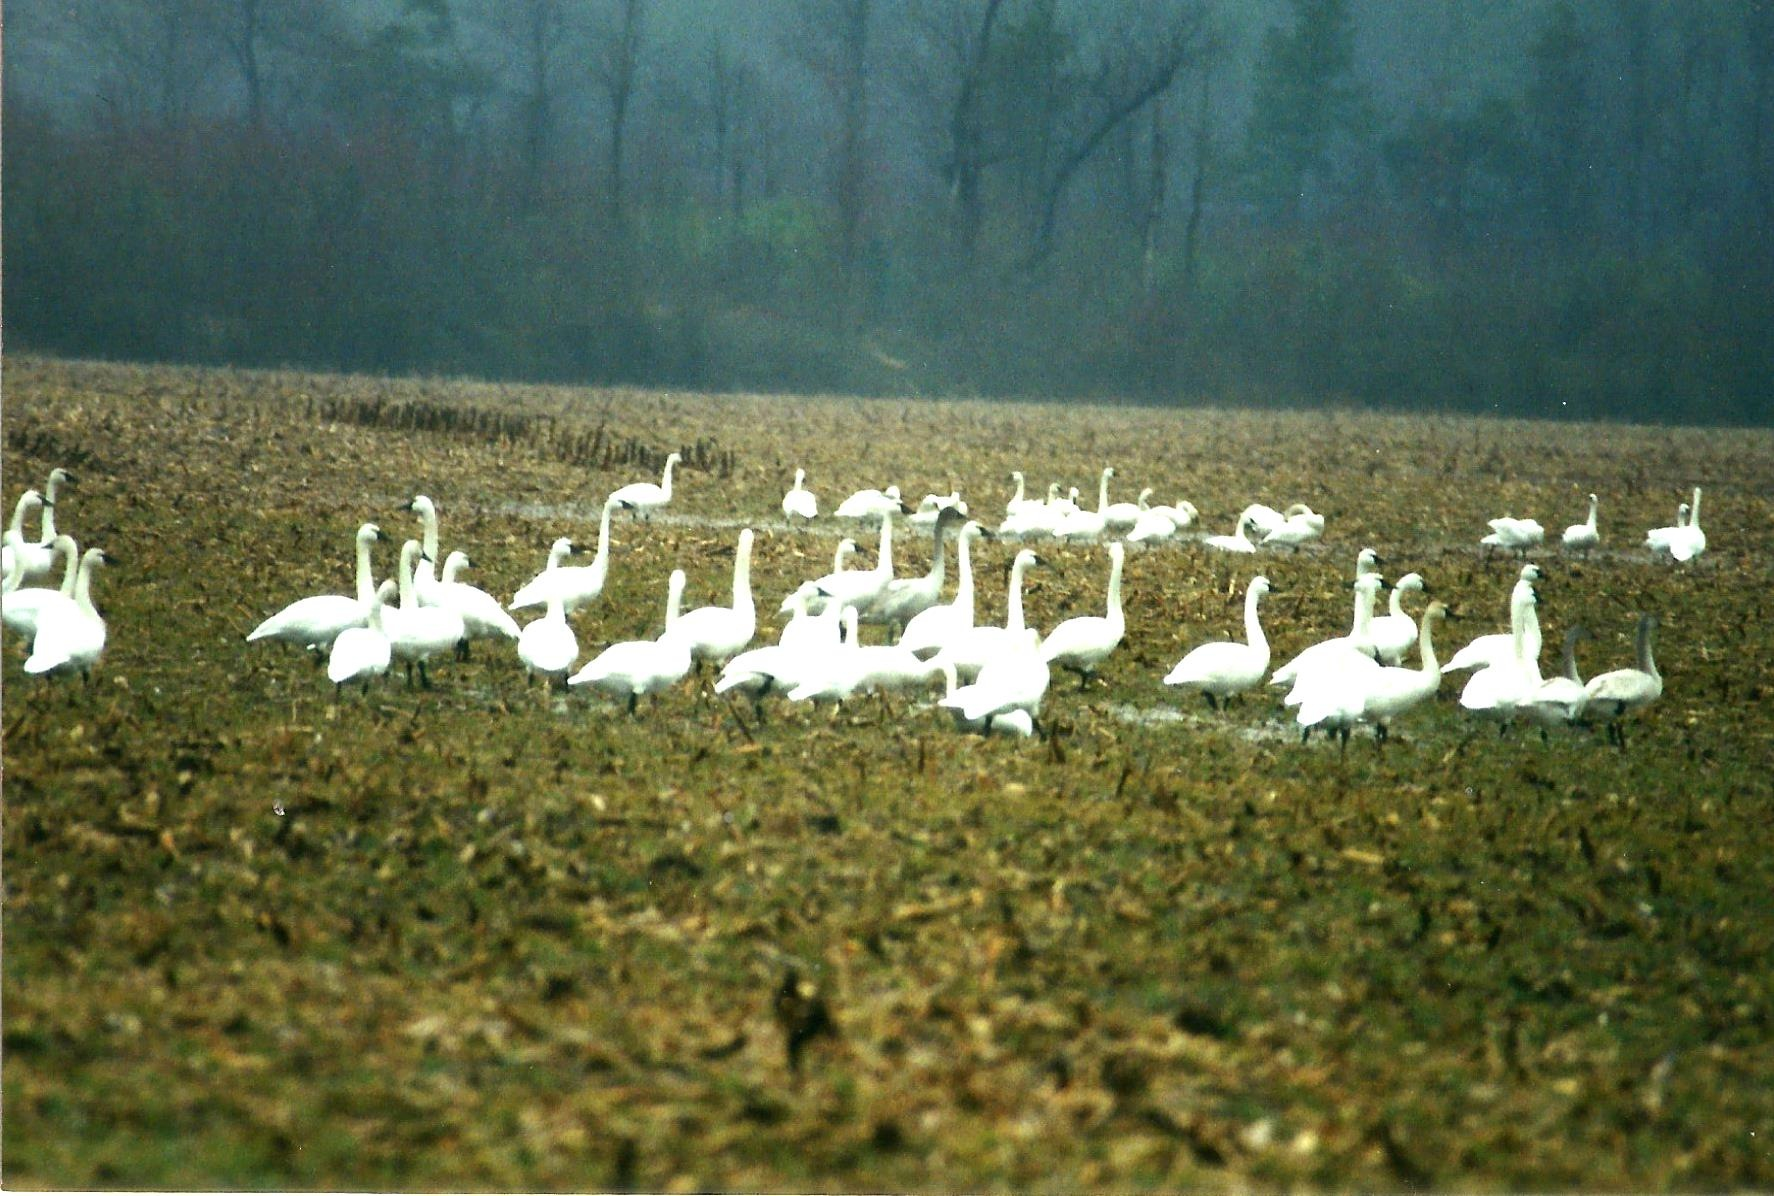 THE TUNDRA SWANS MEETING PLACE by Hope Atwood Dayhoff